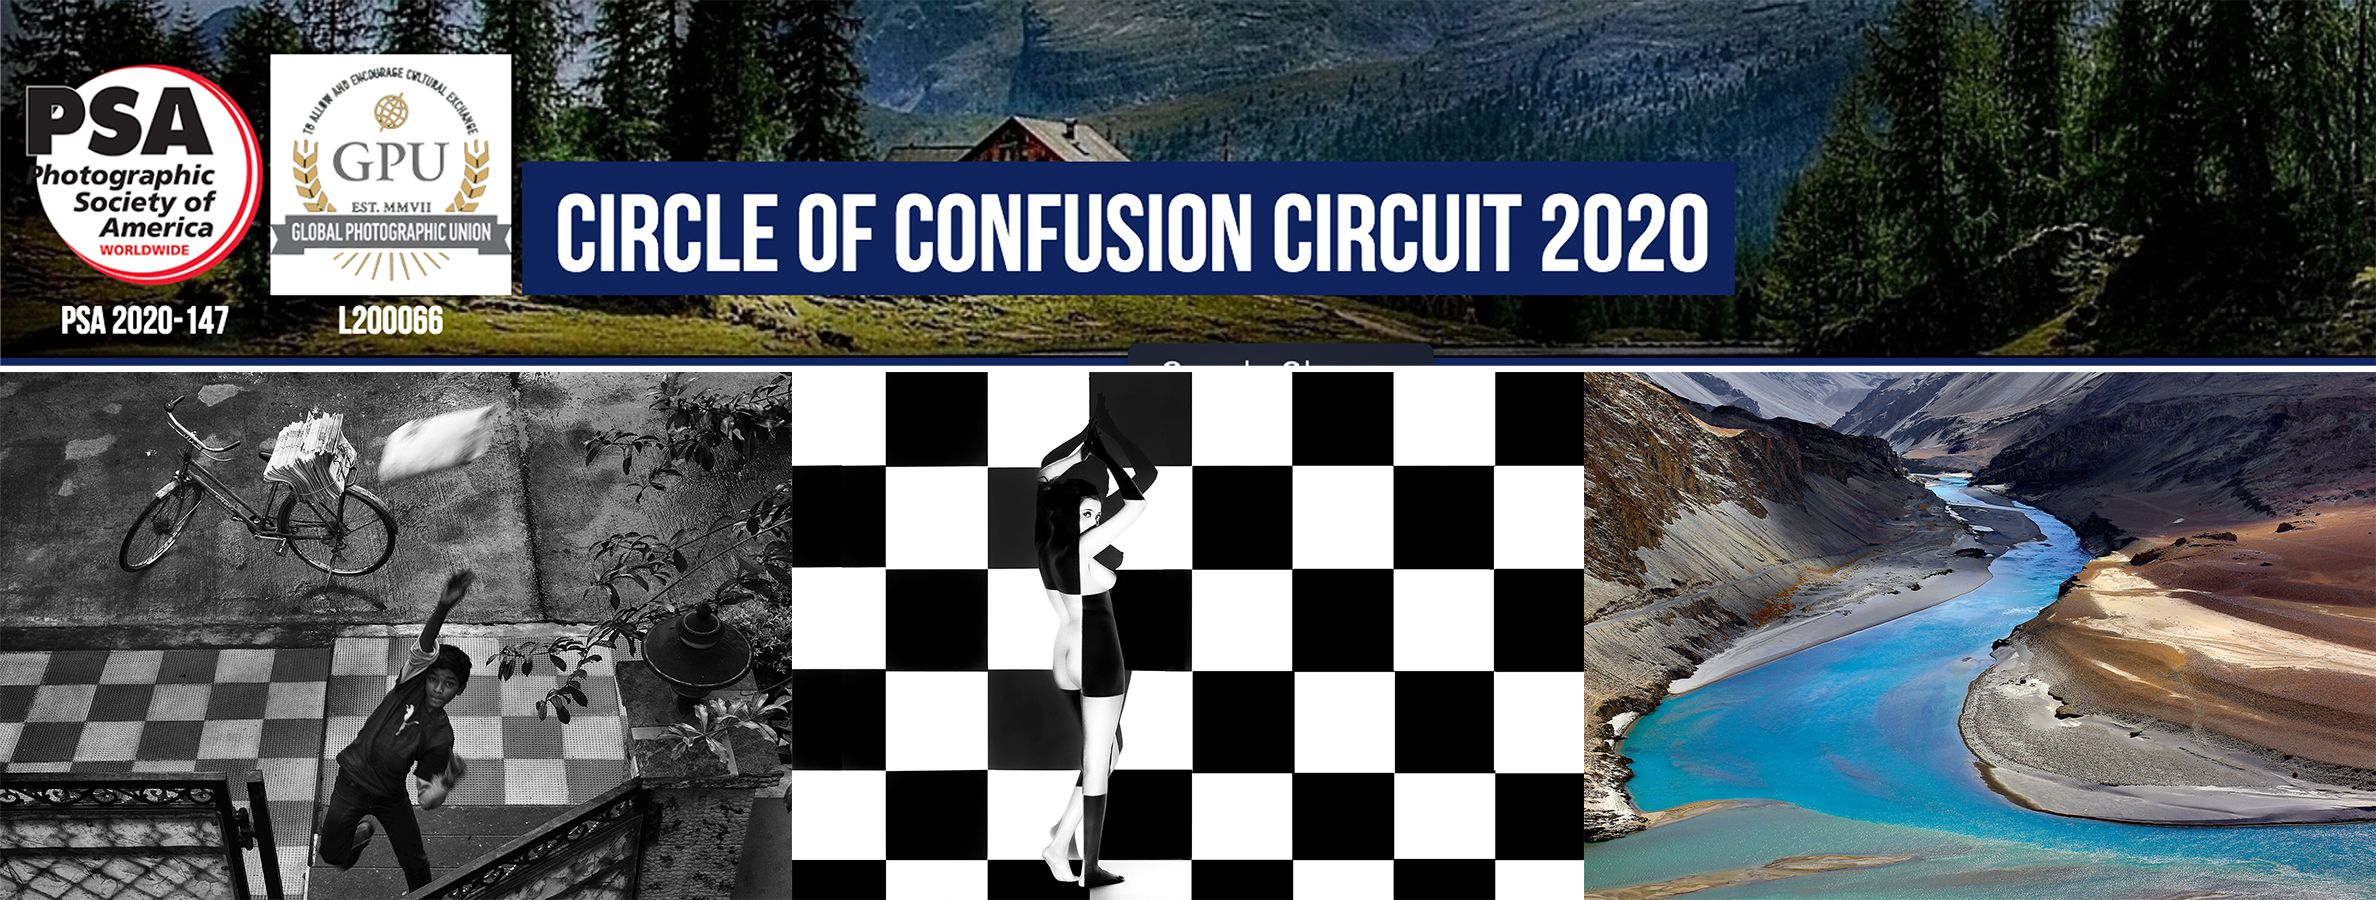 Circle of Confusion Circuit-2020